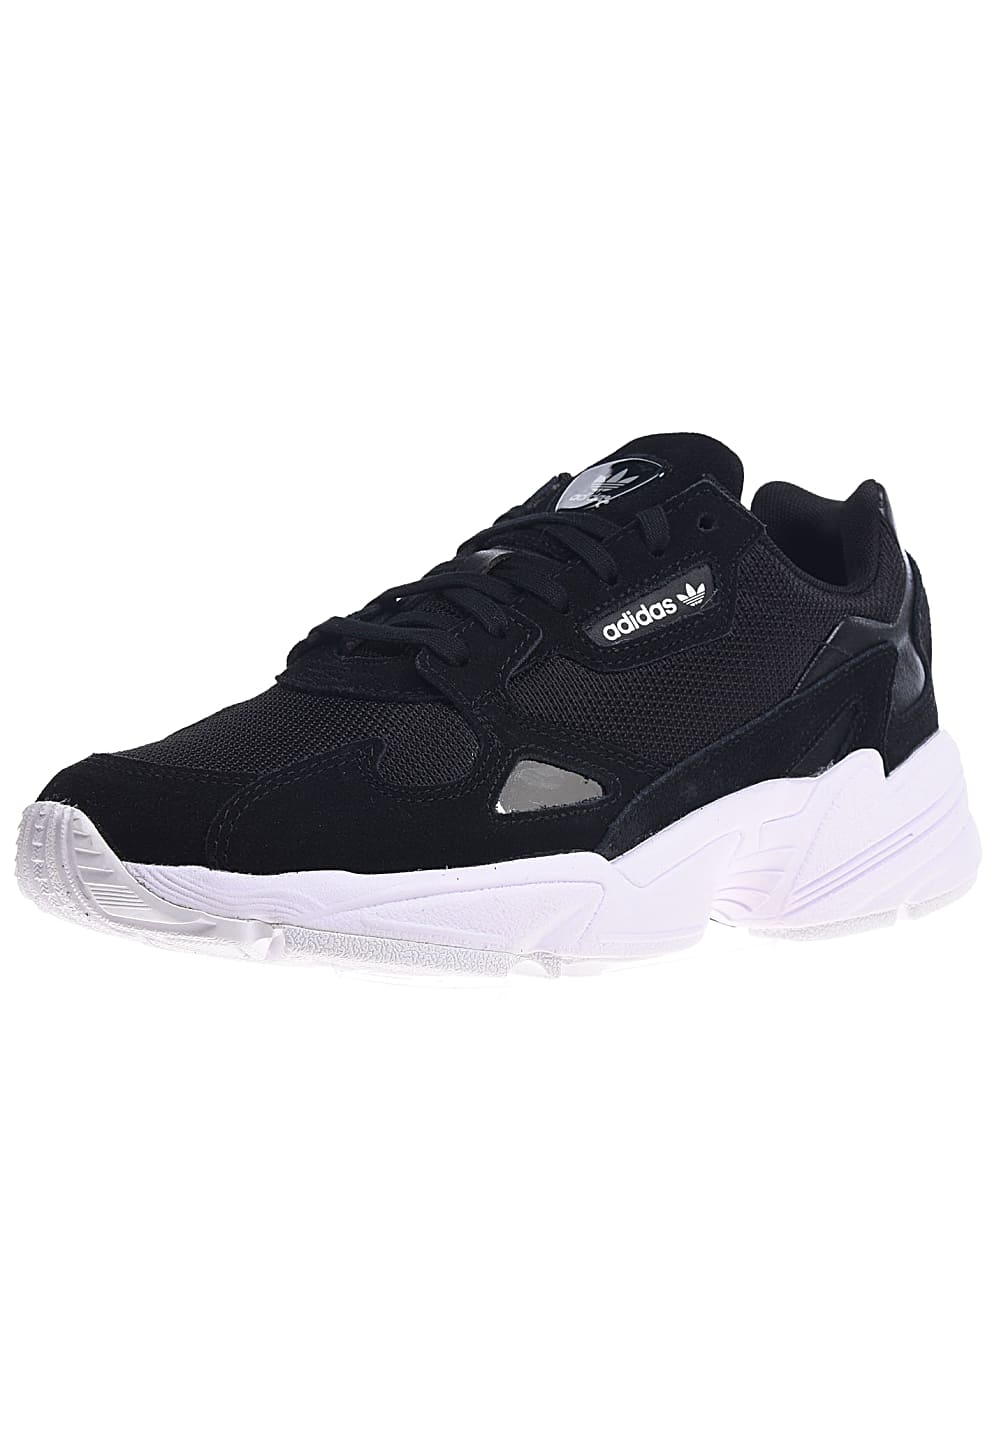 4cb3021232 adidas Originals Falcon - Sneaker für Damen - Schwarz - Planet Sports